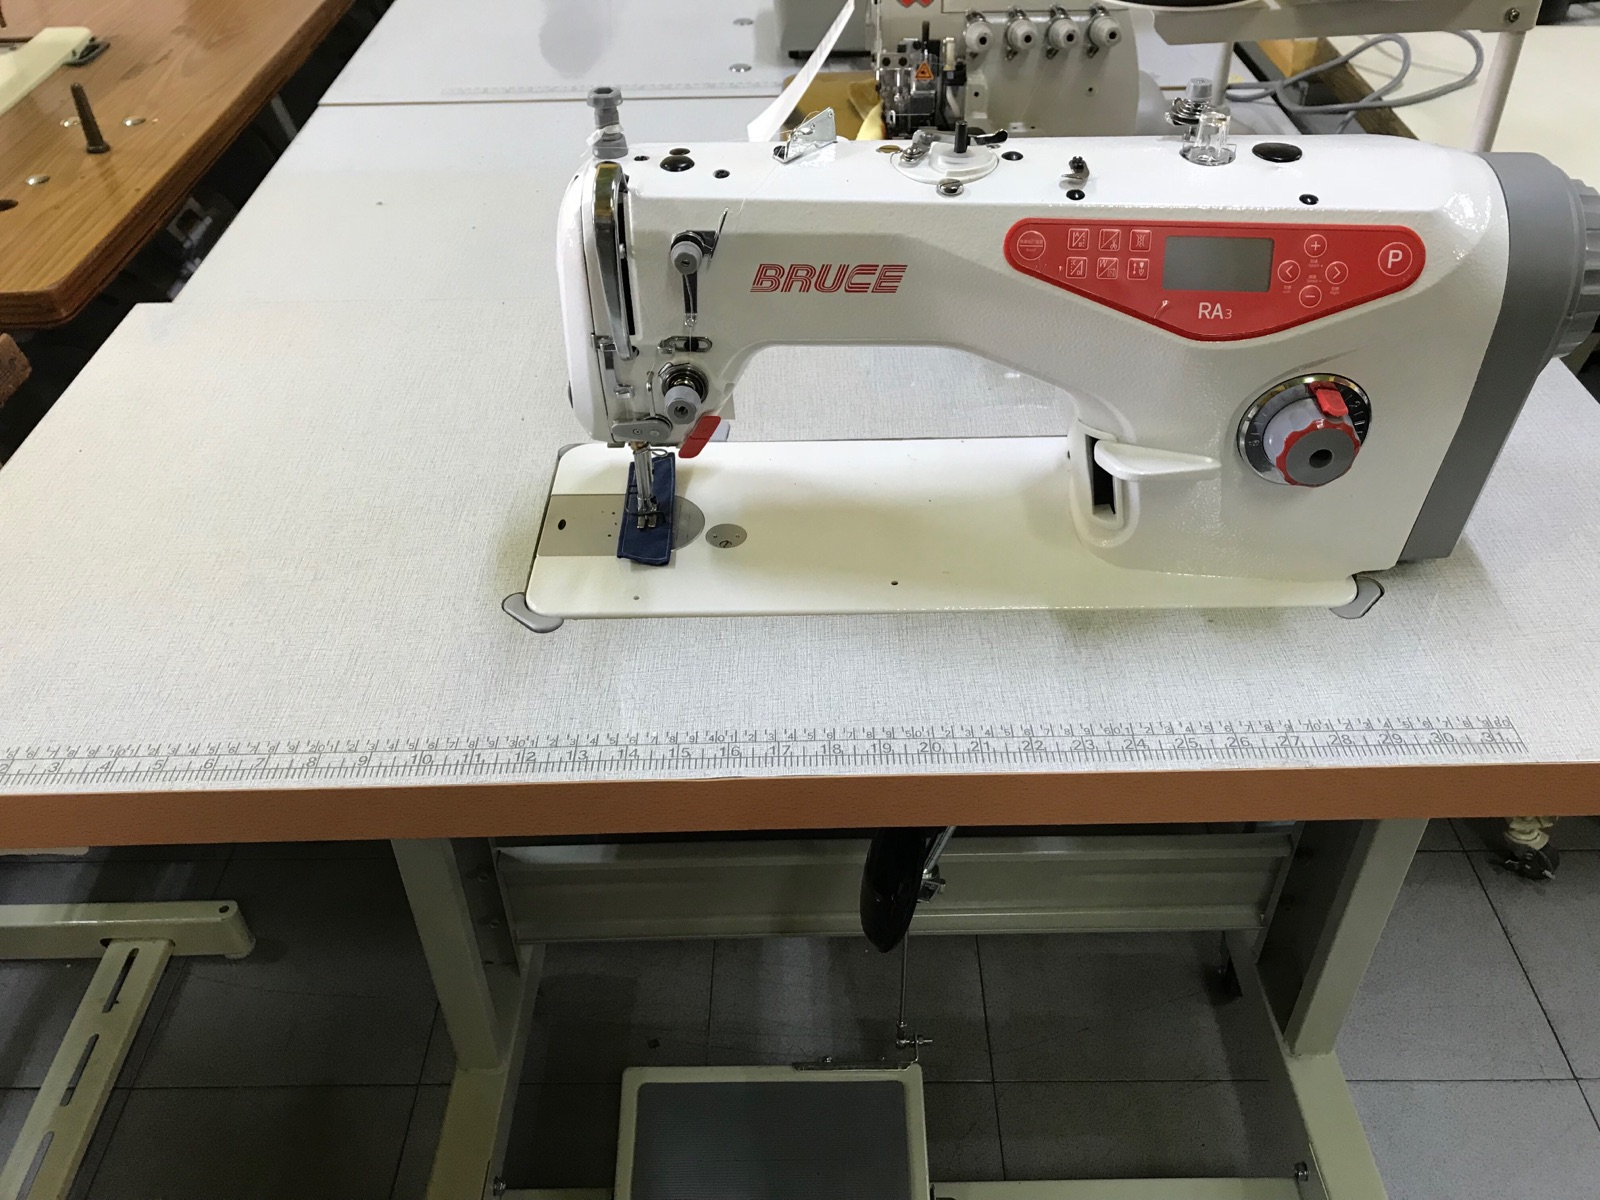 News Brand Bruce Super Hi Speed Sewing Machine